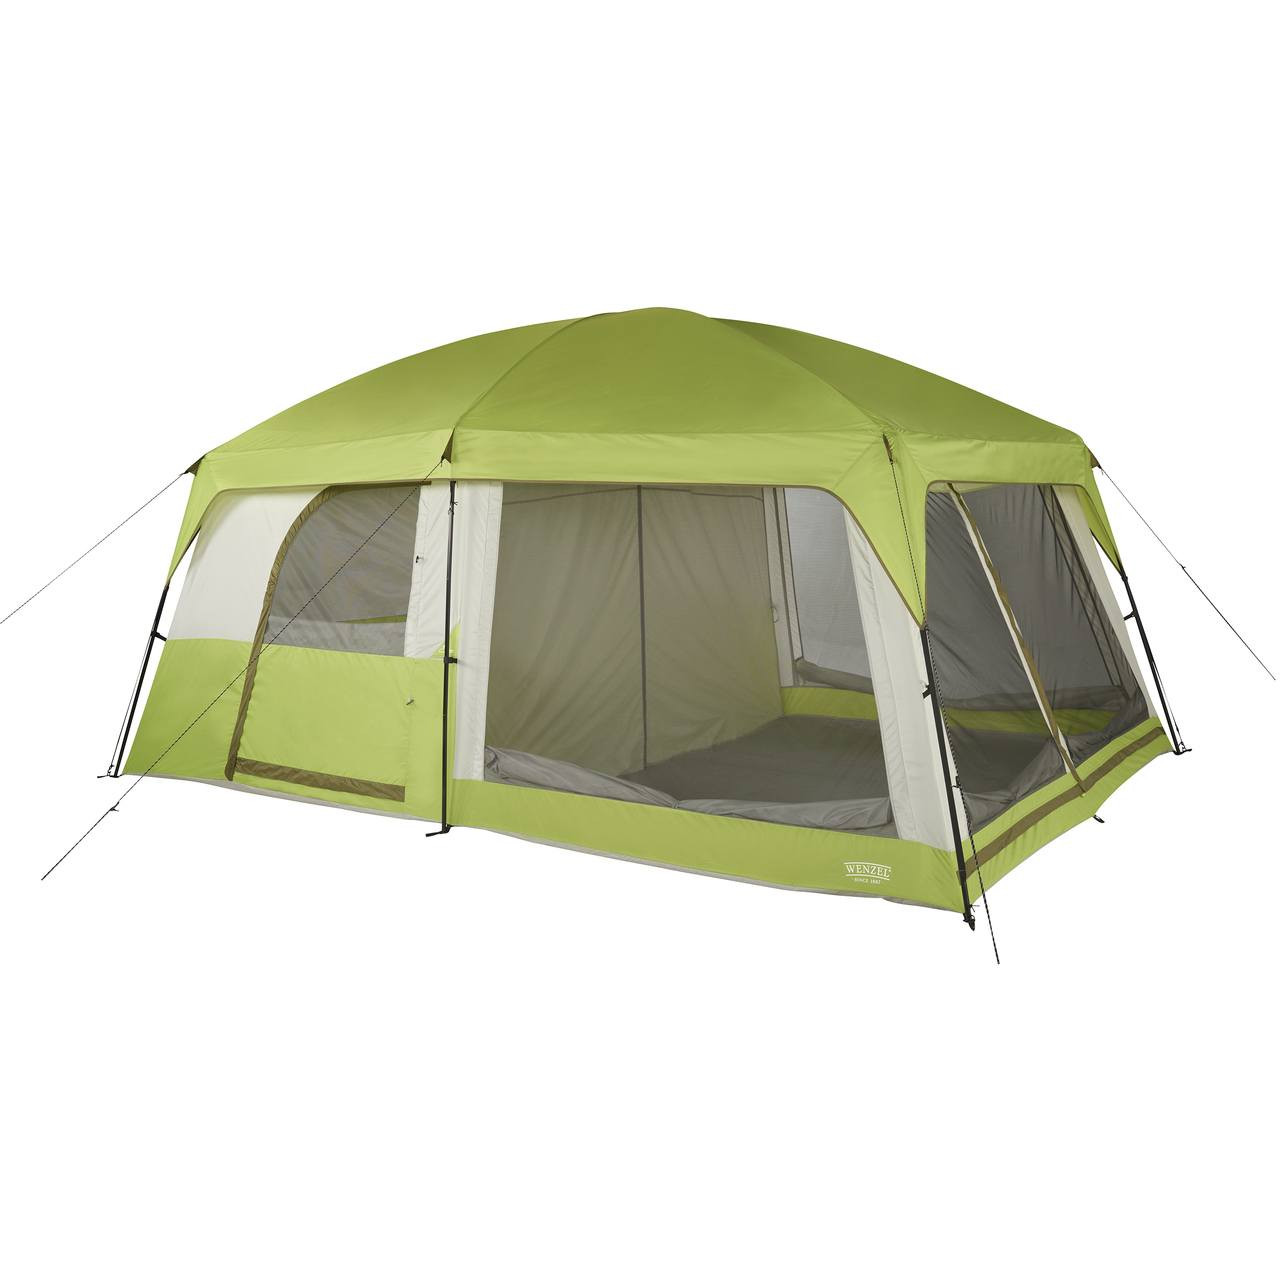 Wenzel Eldorado 10 tent, light green and gray, completely set up with the rain fly on, guy lines extended and screen door covers rolled down with the inside tent doors set up